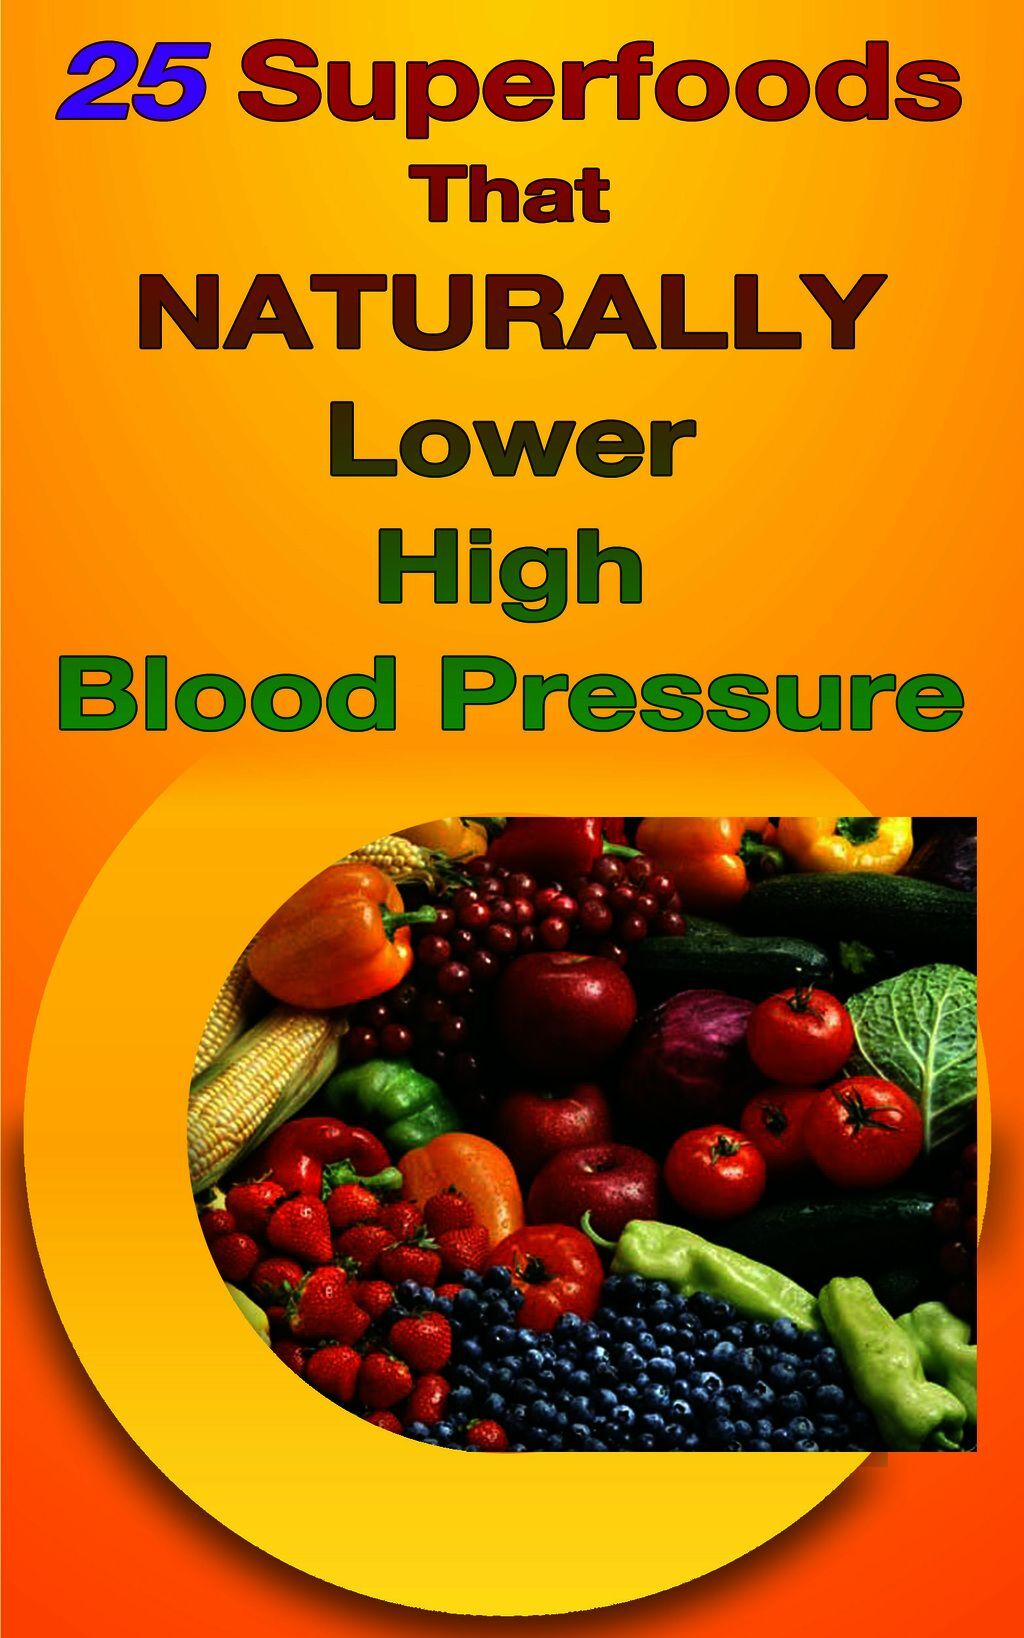 25 Superfoods That Naturally Lower Your Blood Pressure